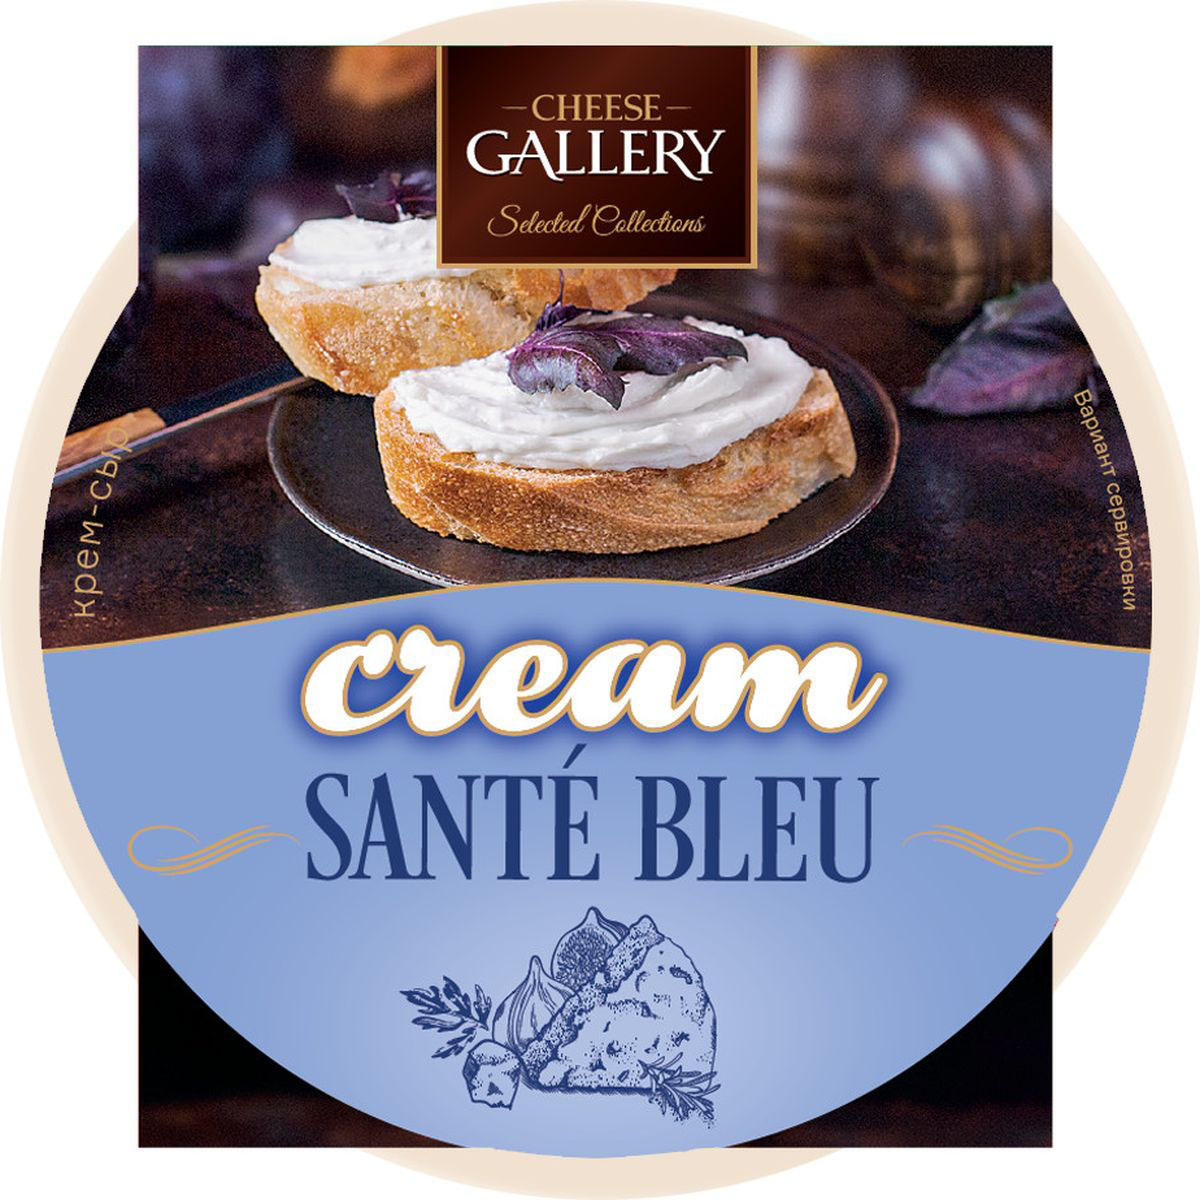 Cheese Gallery Sante Blue Крем-сыр, 150 г